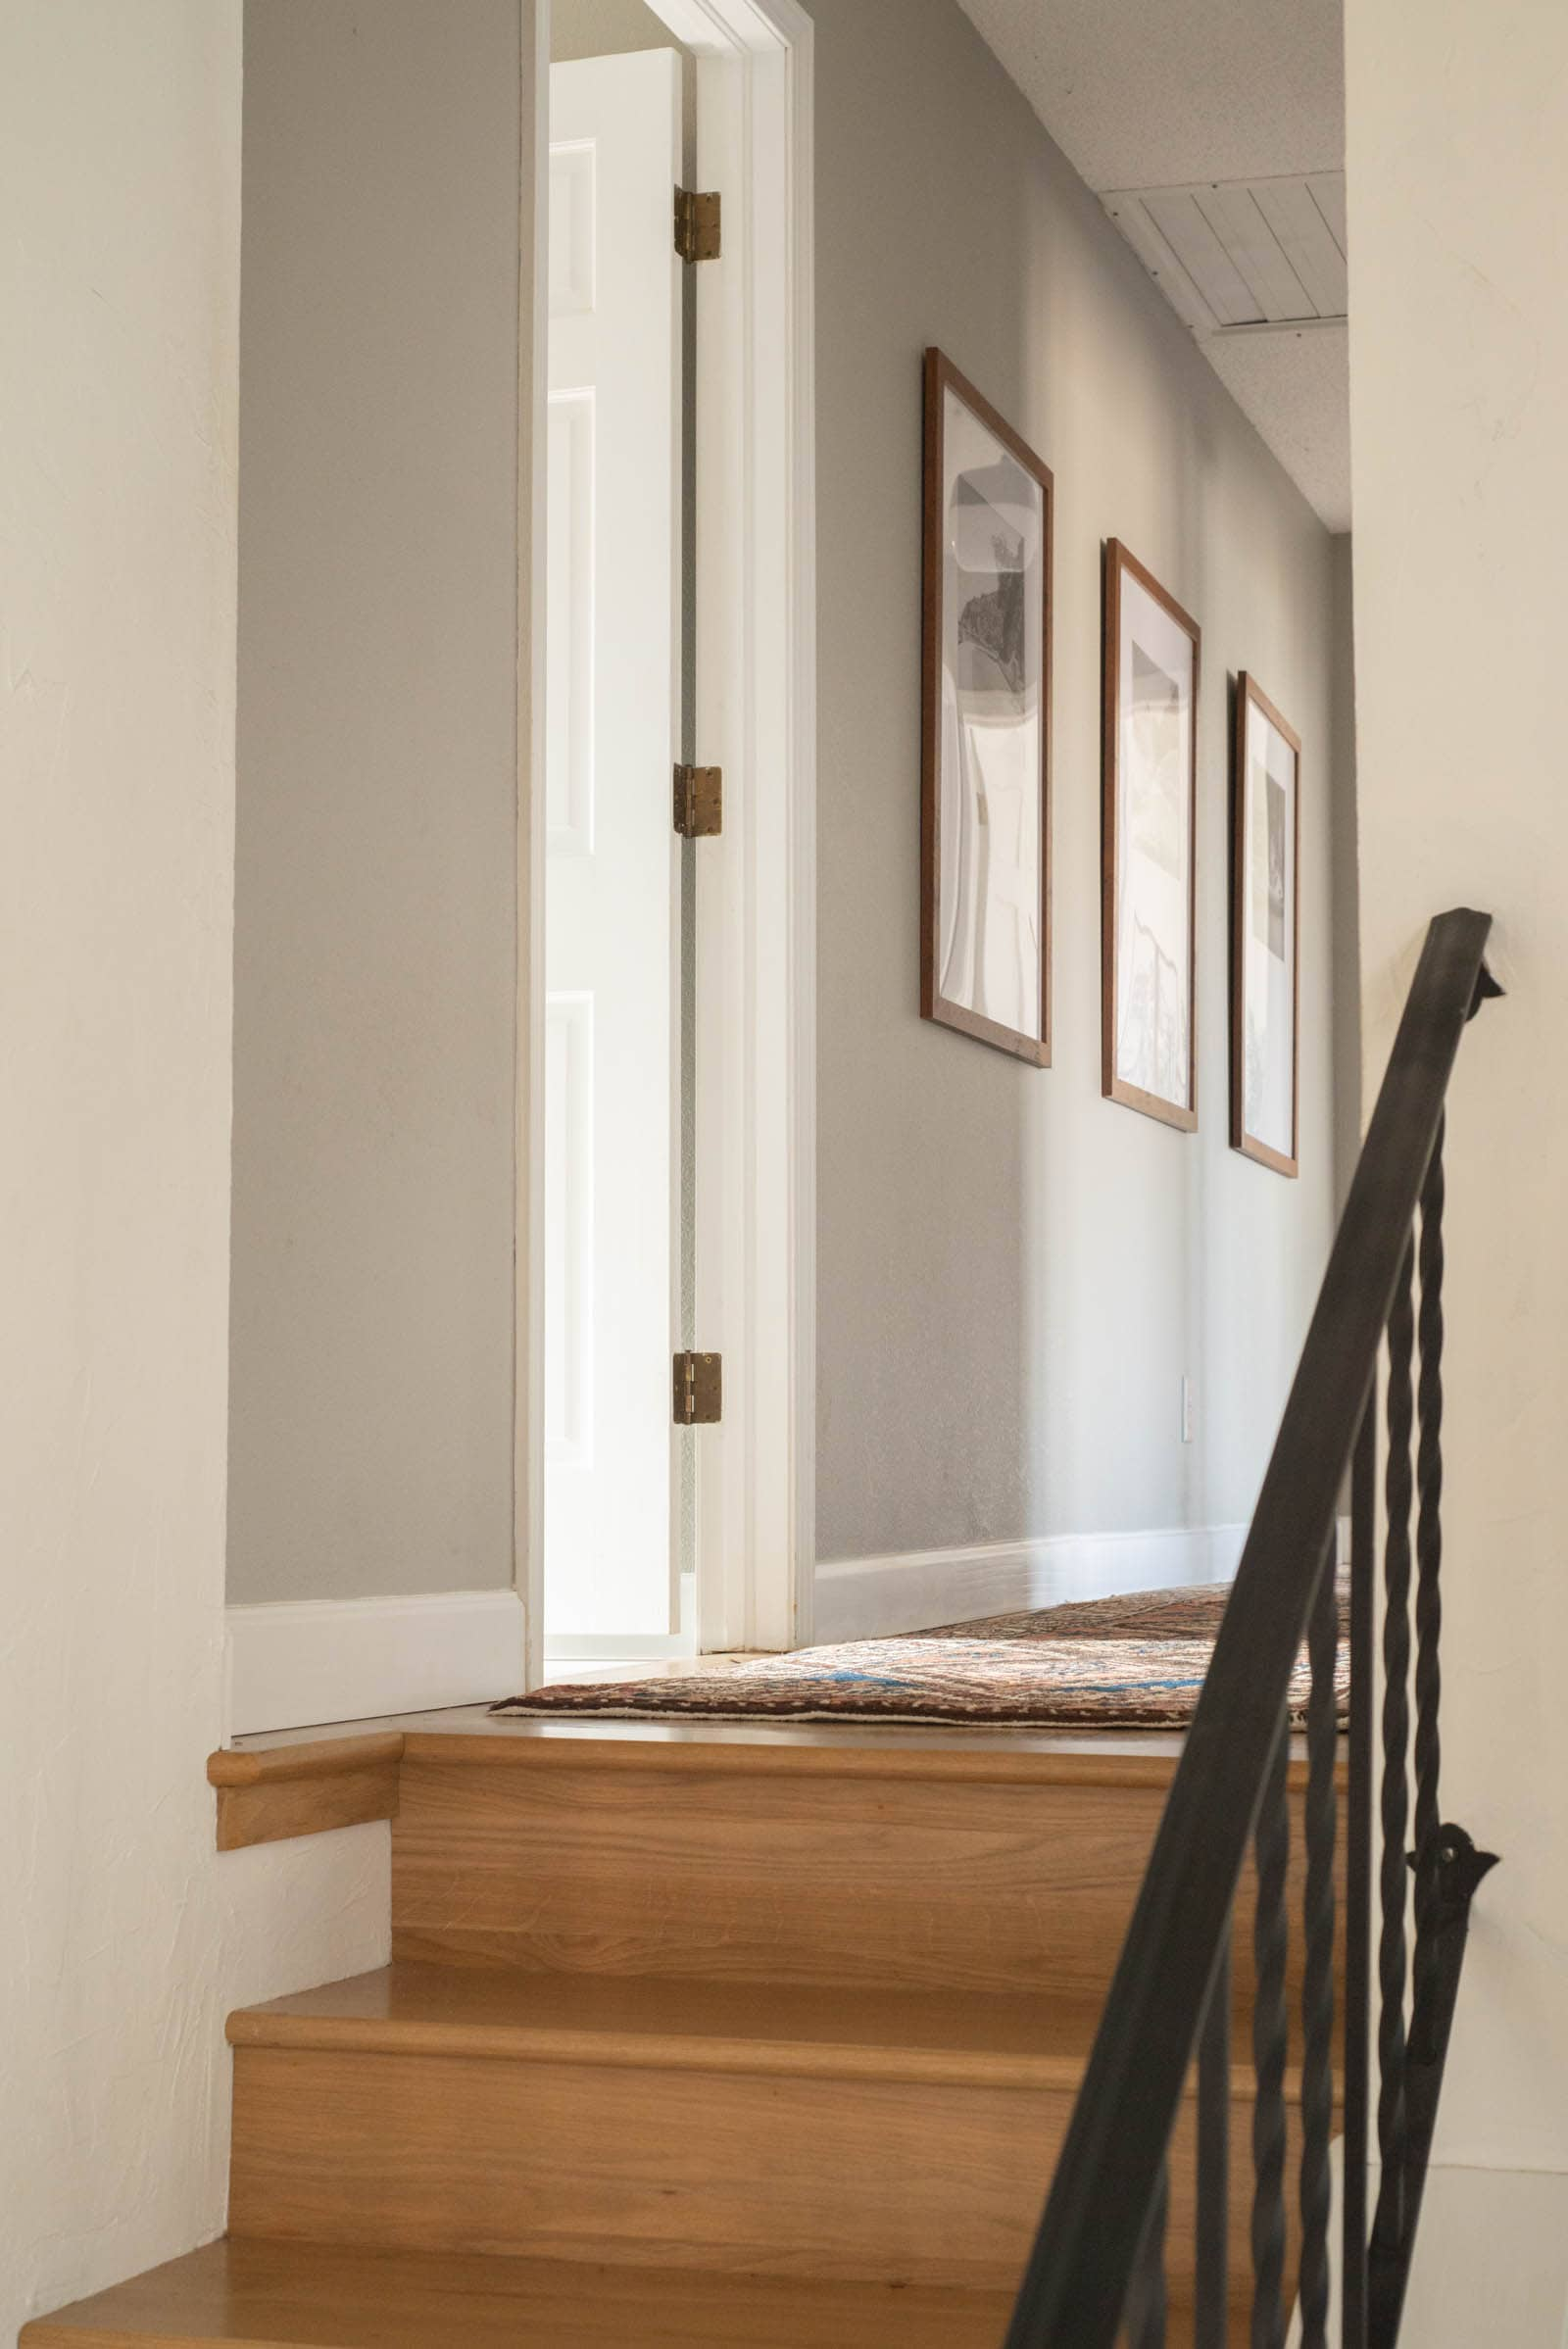 Wood stairs and a gray hallway